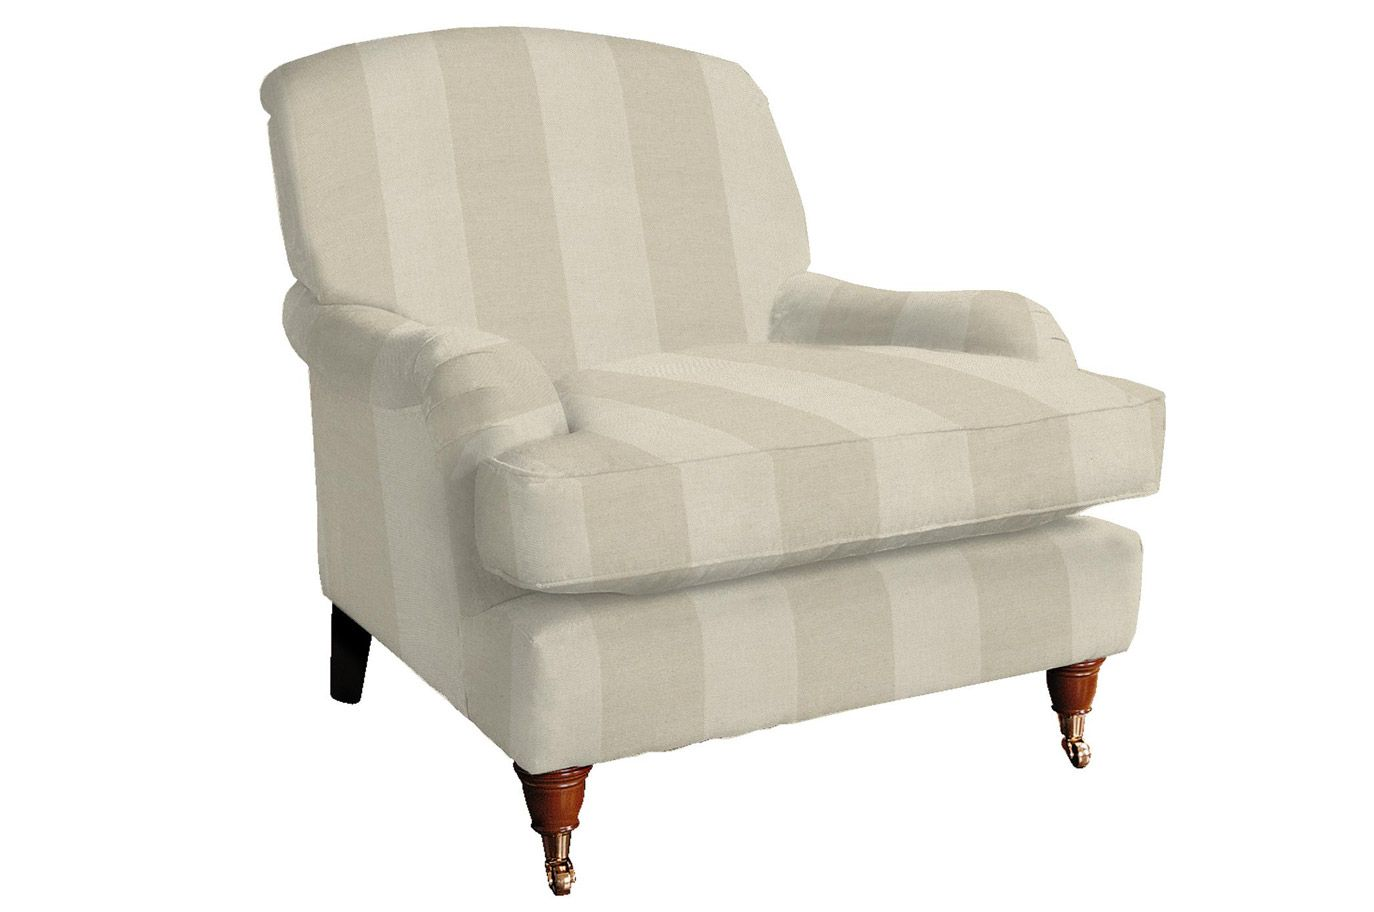 Richmond Upholstered Chair Laura Ashley Made To Order